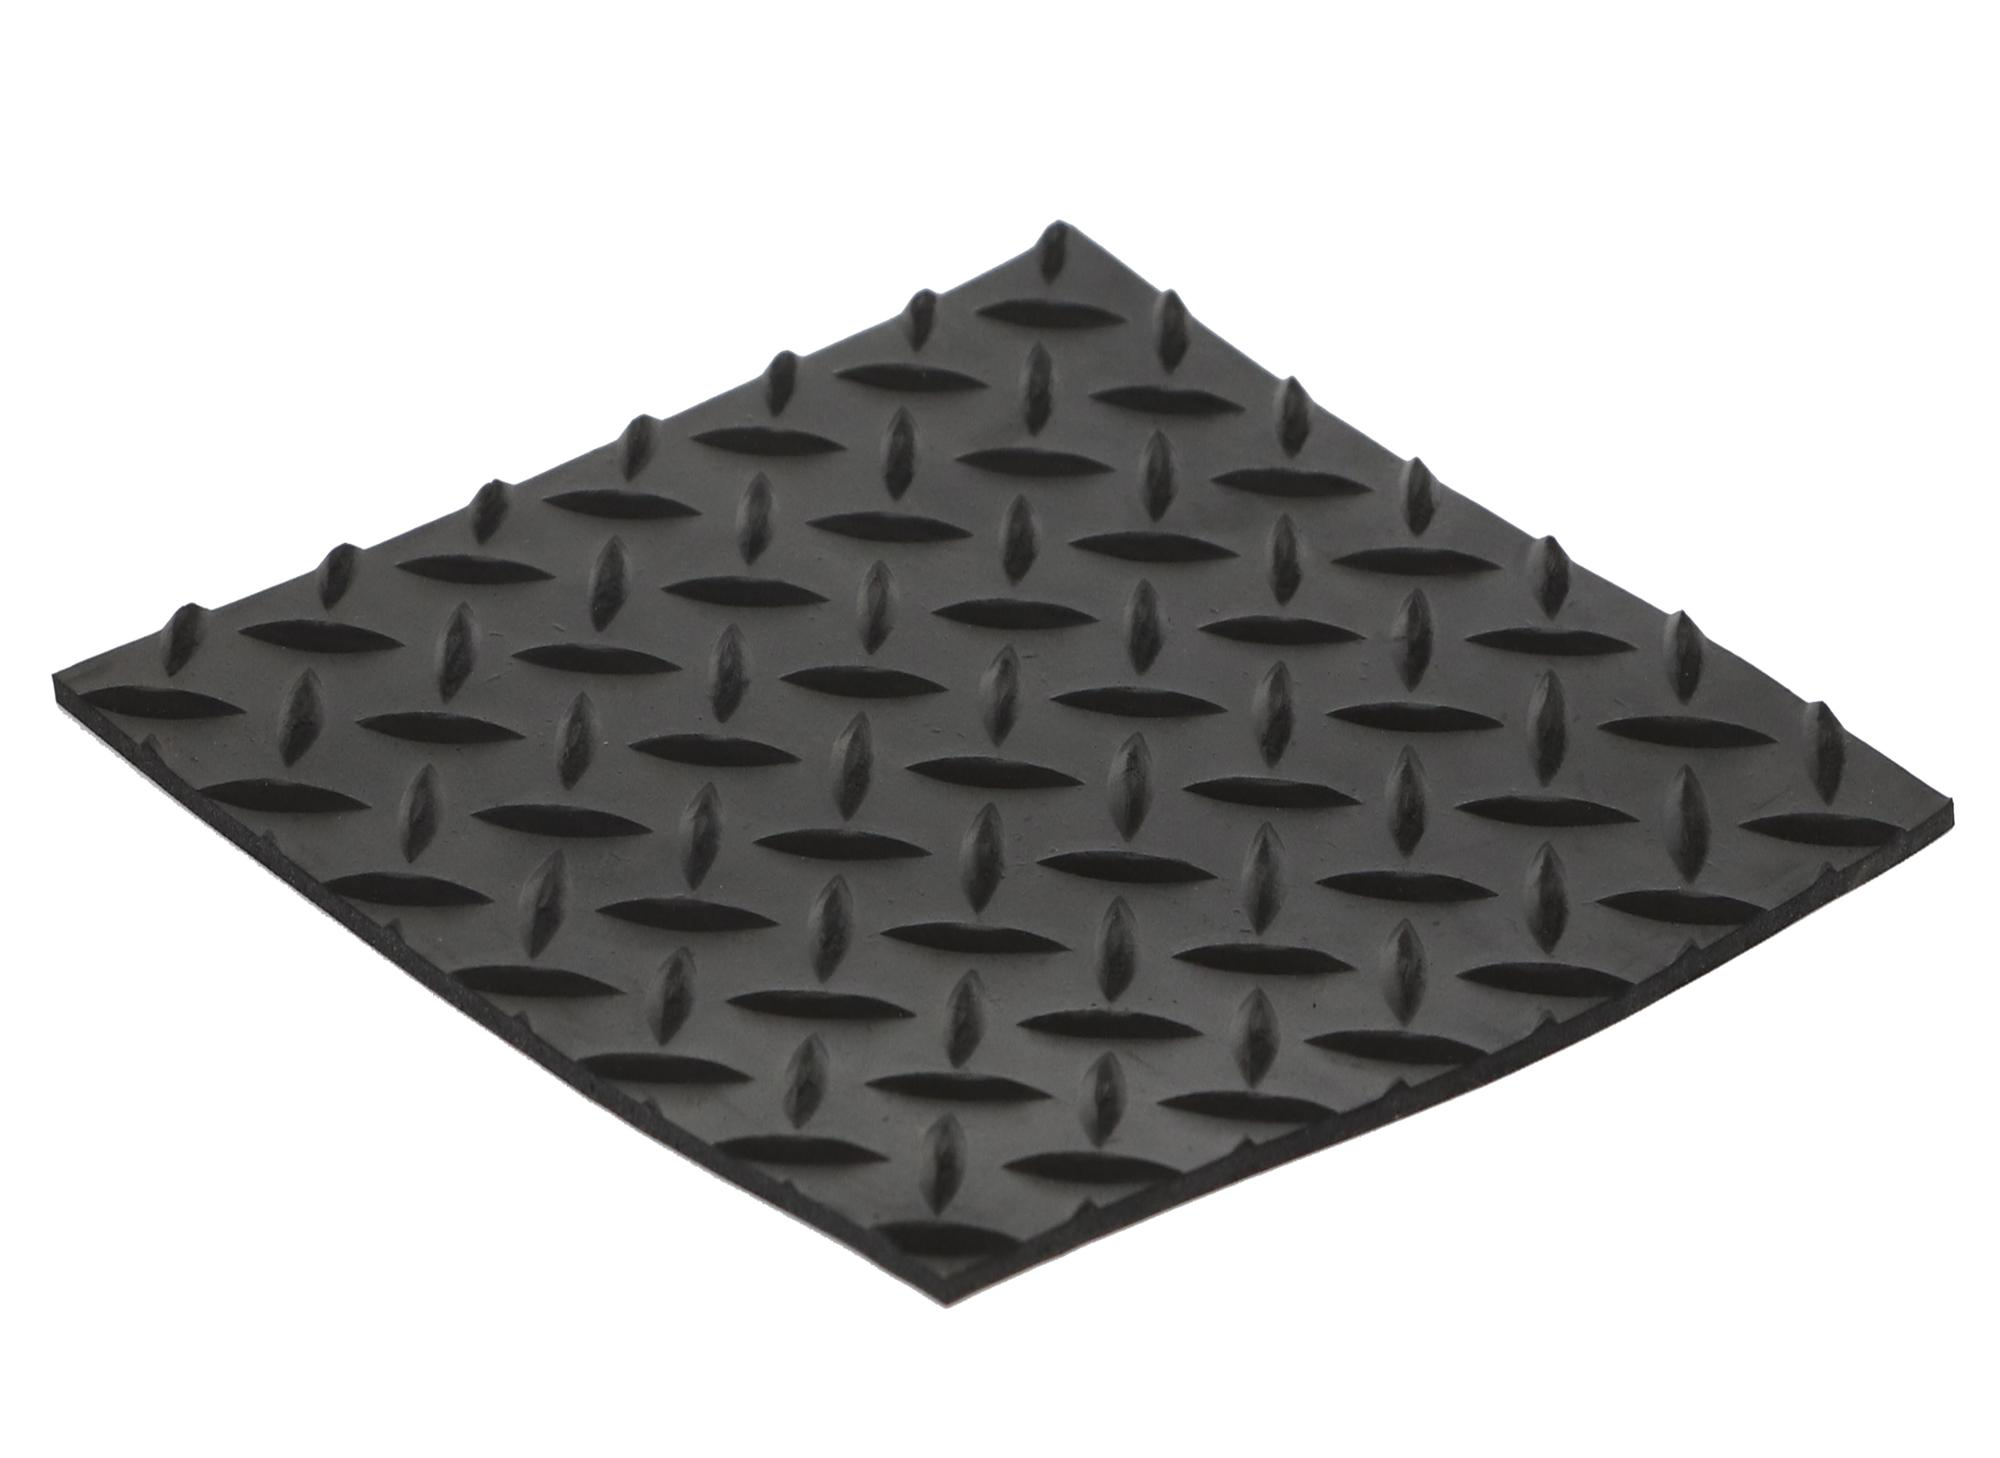 China Factory Manufacture Willow Rubber Floor Mat With High Quality